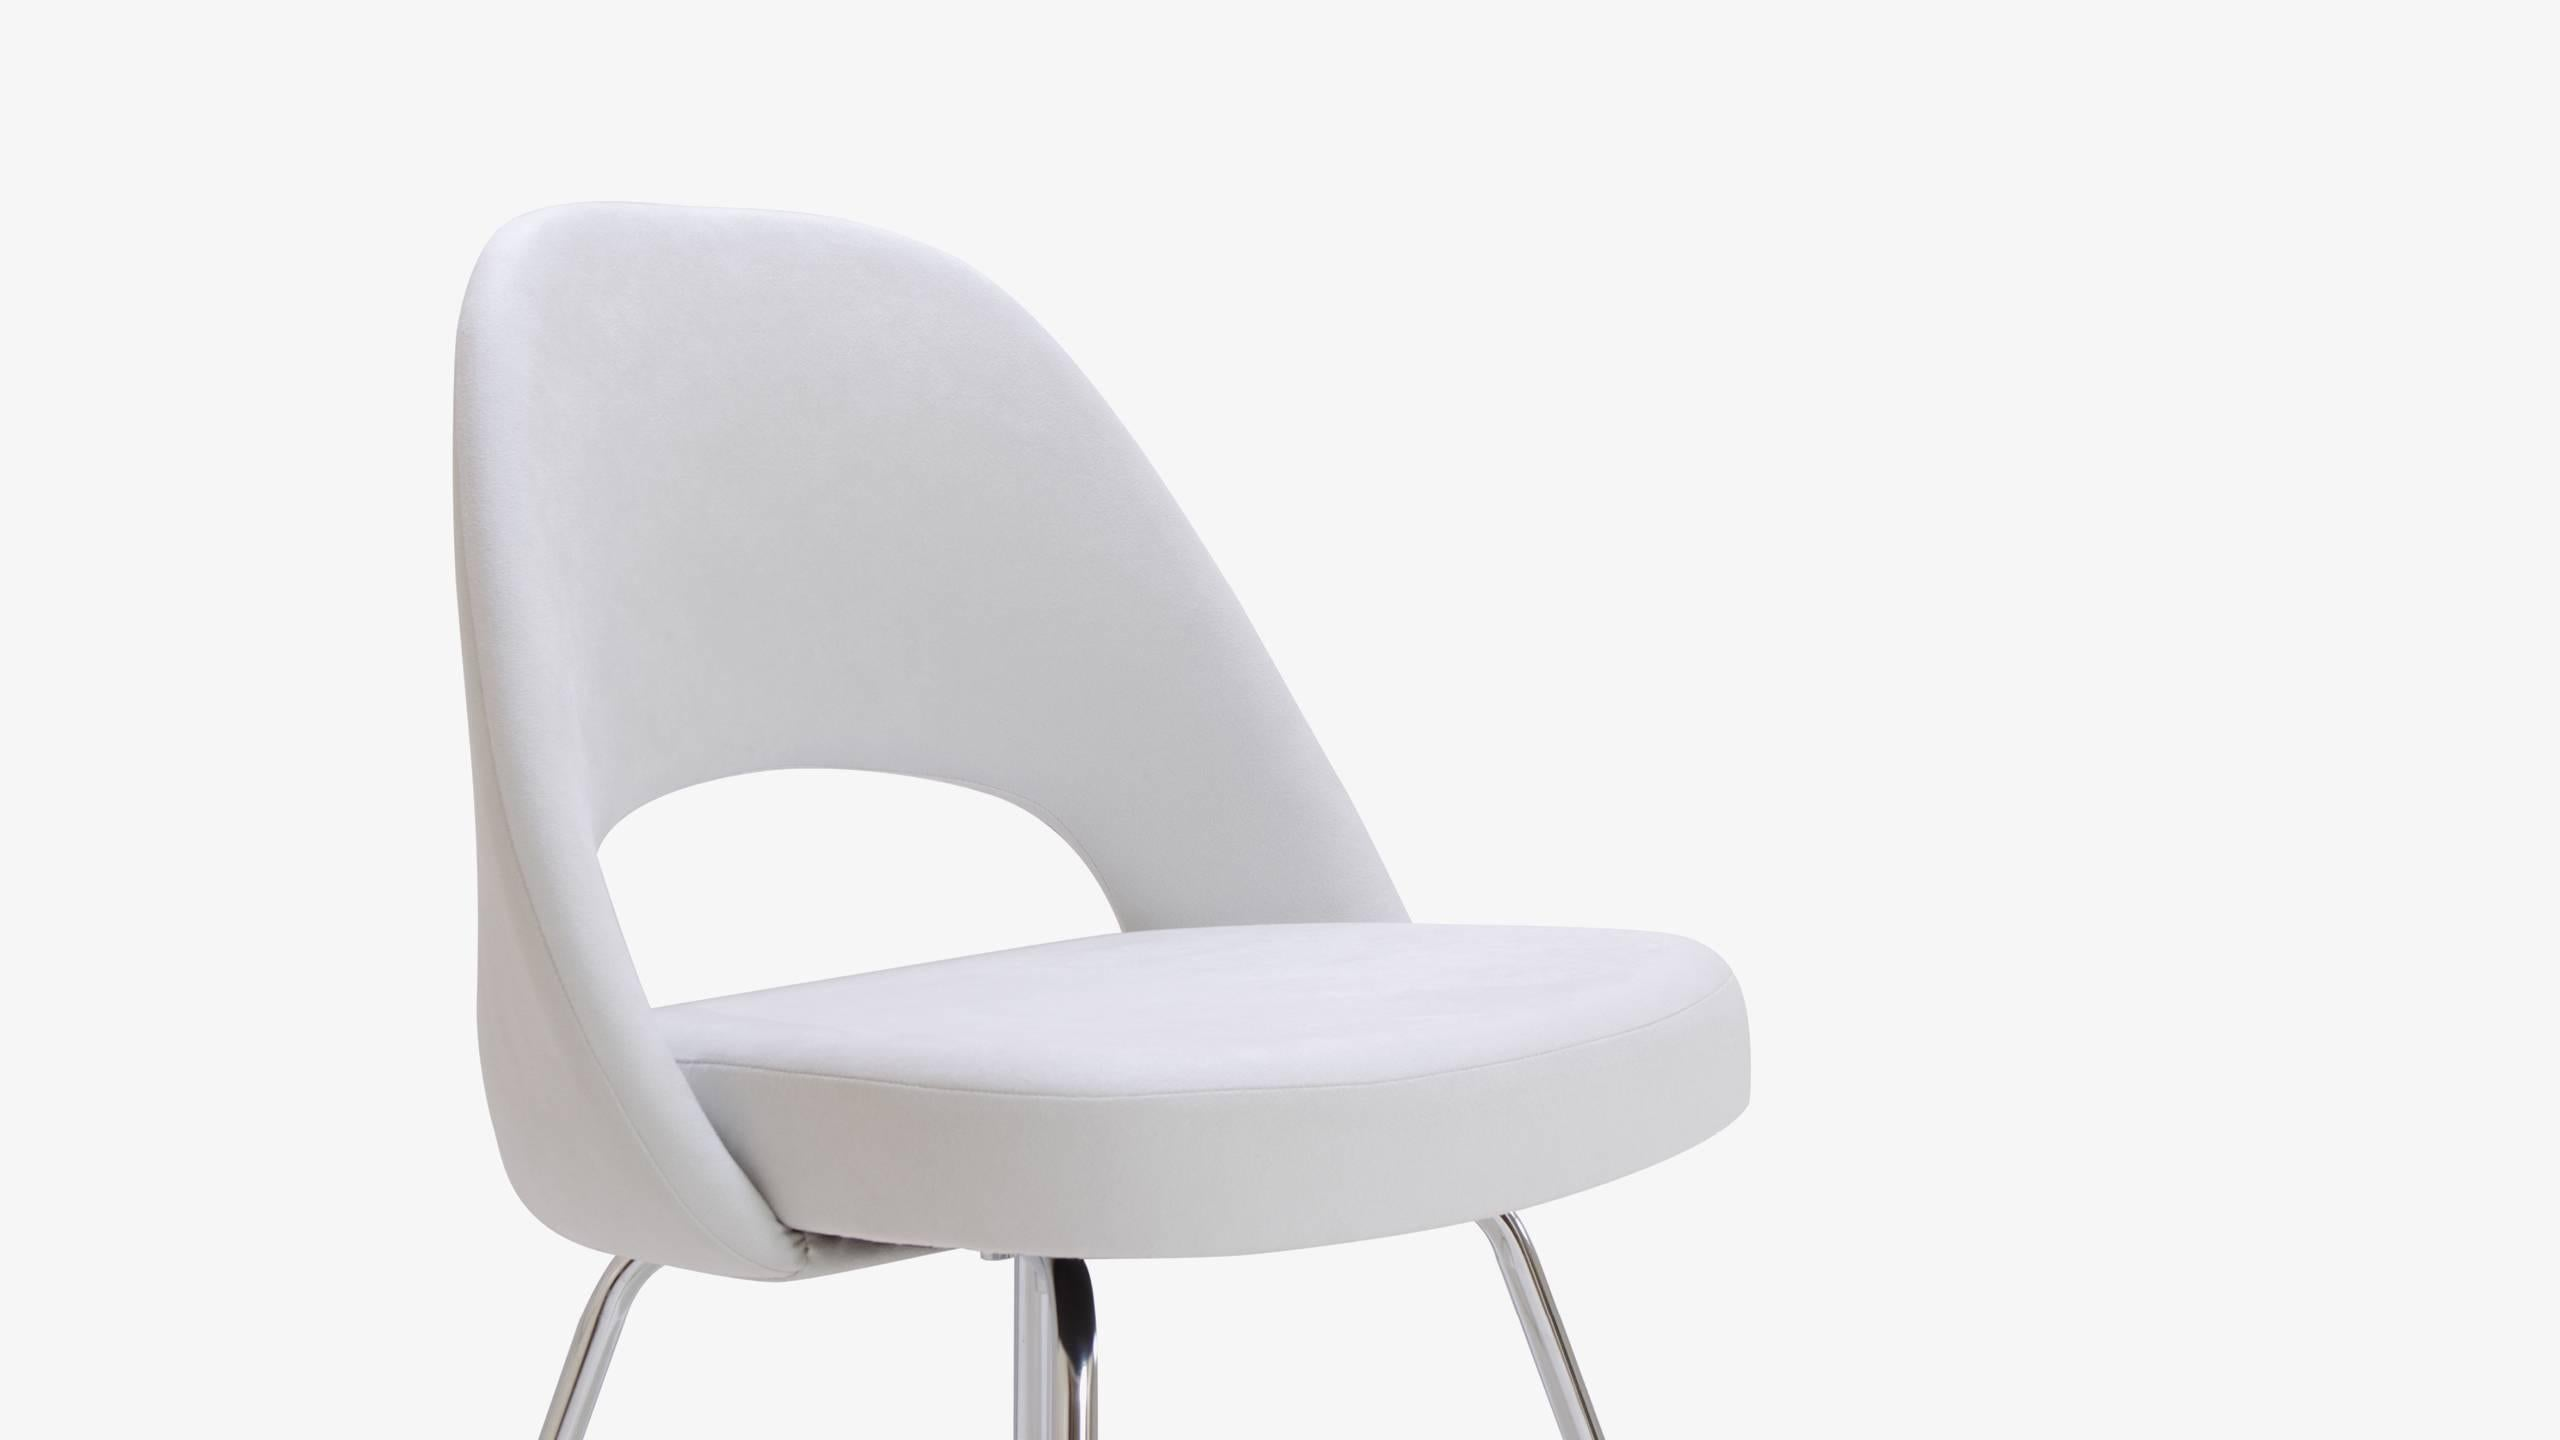 saarinen executive armless chair in dove luxe suede for sale at 1stdibs